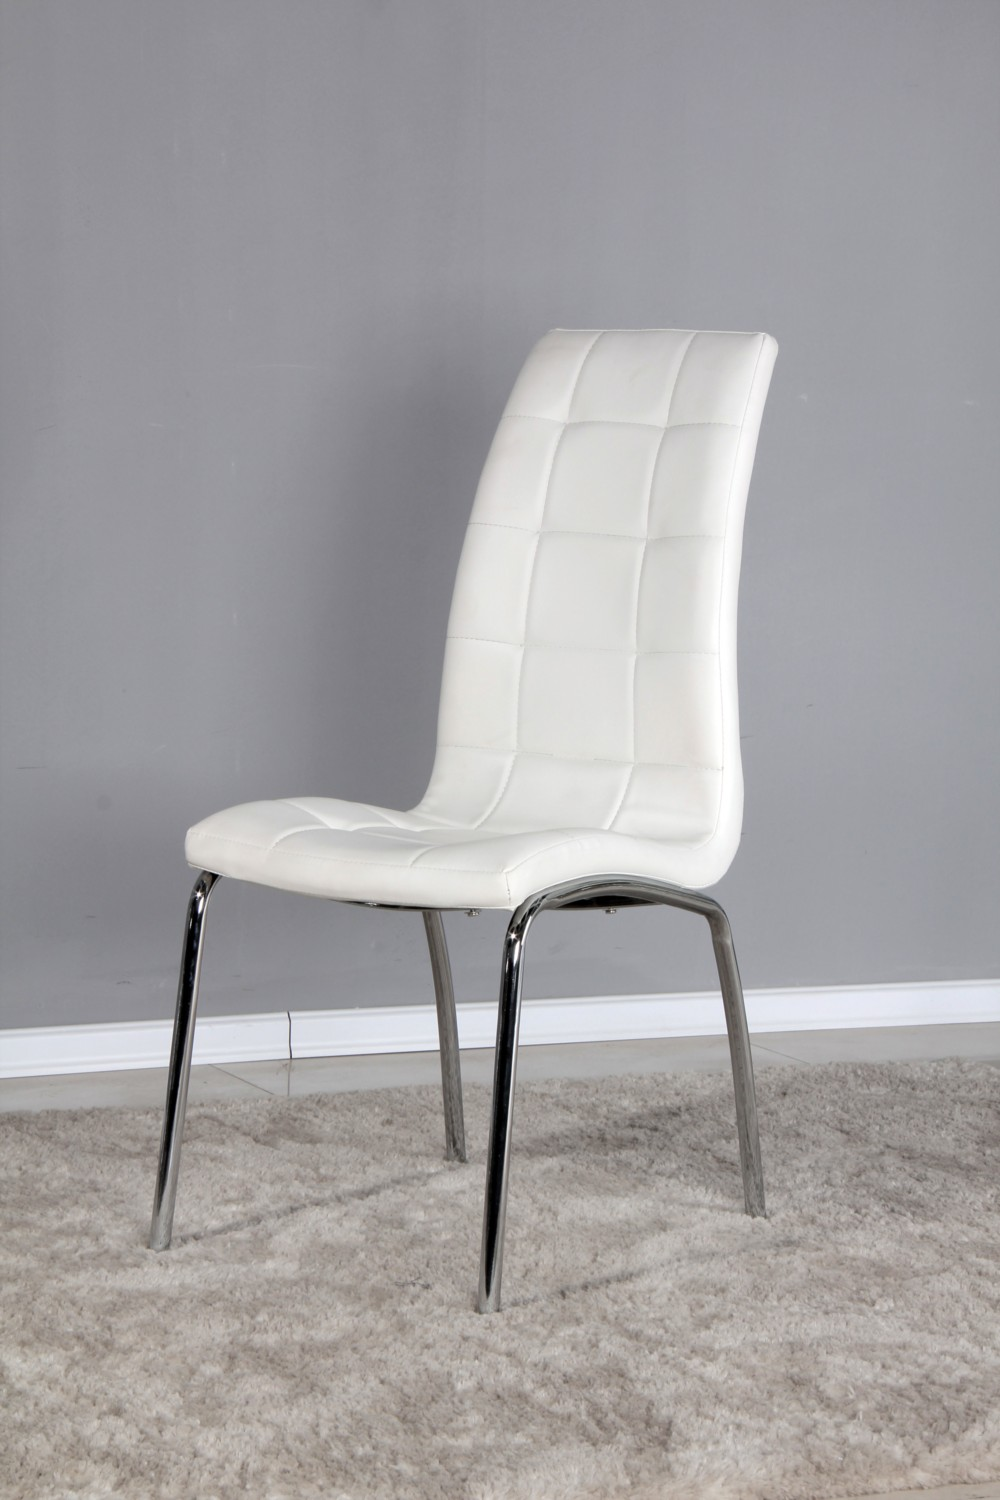 Padded kitchen chairs - creating your comfort | Dining ...